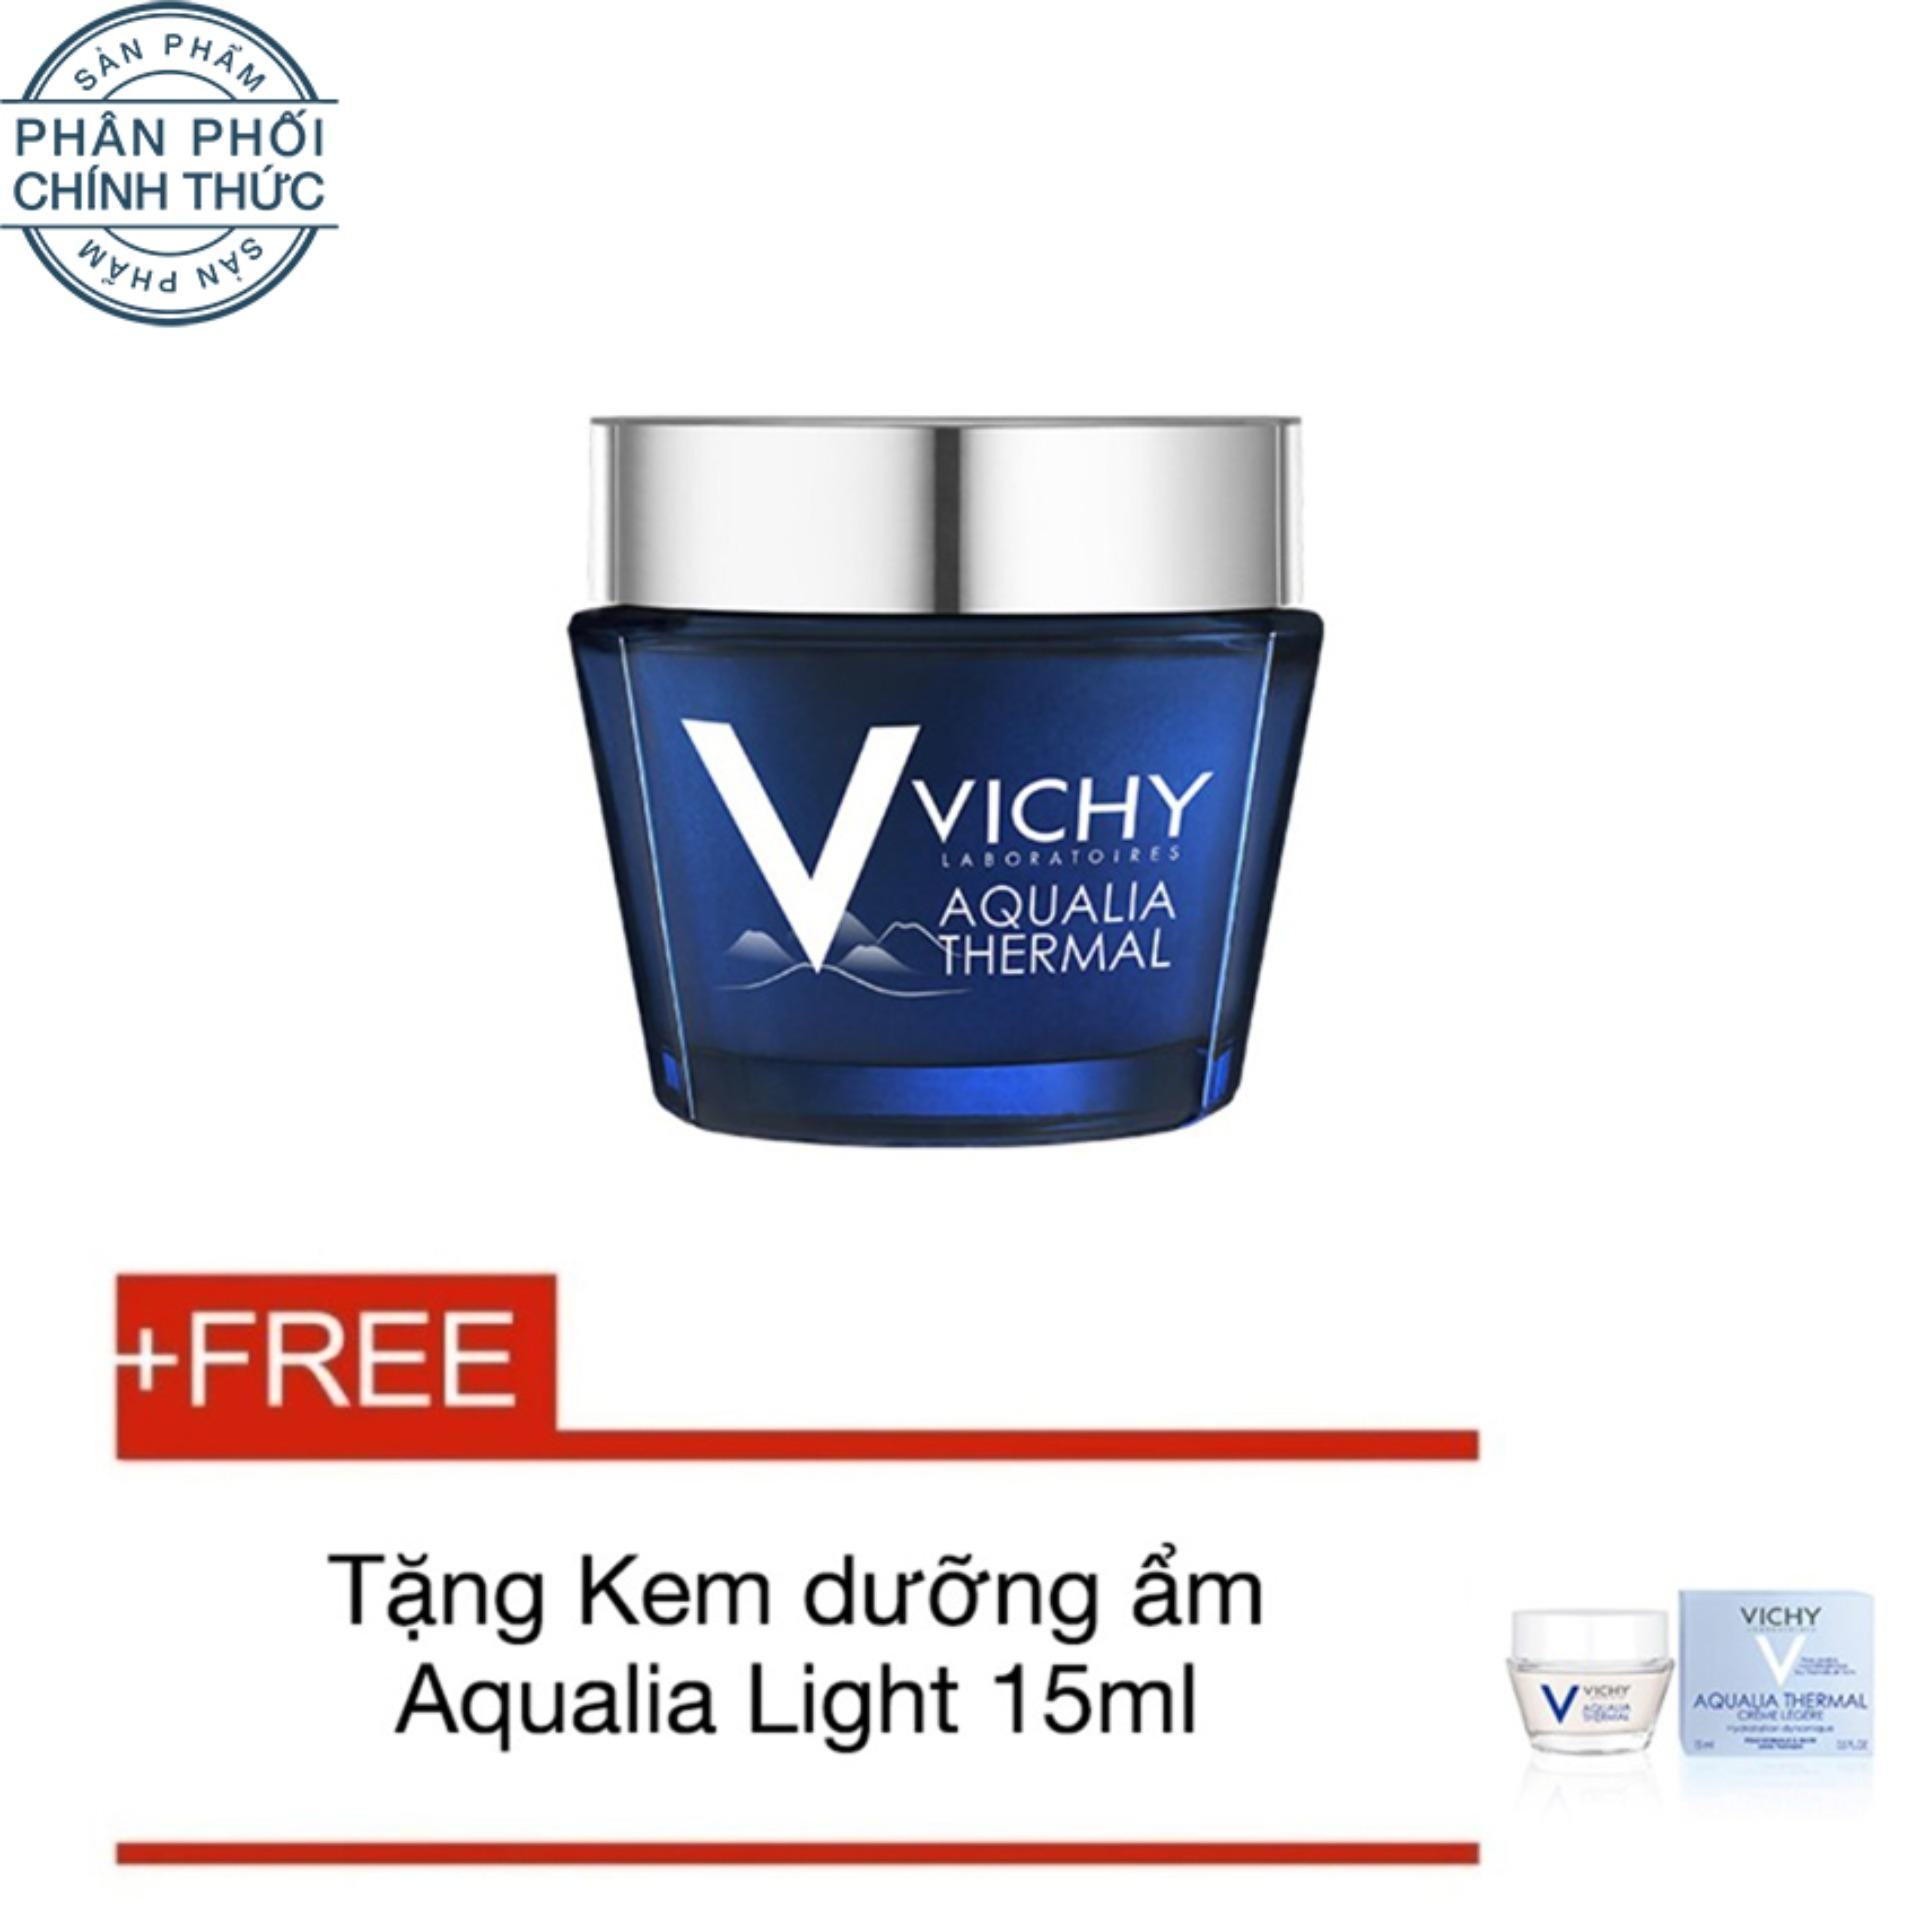 Mã Khuyến Mại Mặt Nạ Ngủ Dưỡng Ẩm Vichy Aqualia Thermal Spa Sleeping Mask 75Ml Tặng Kem Dưỡng Ẩm Aqualia Light Cream 15Ml Trong Vietnam